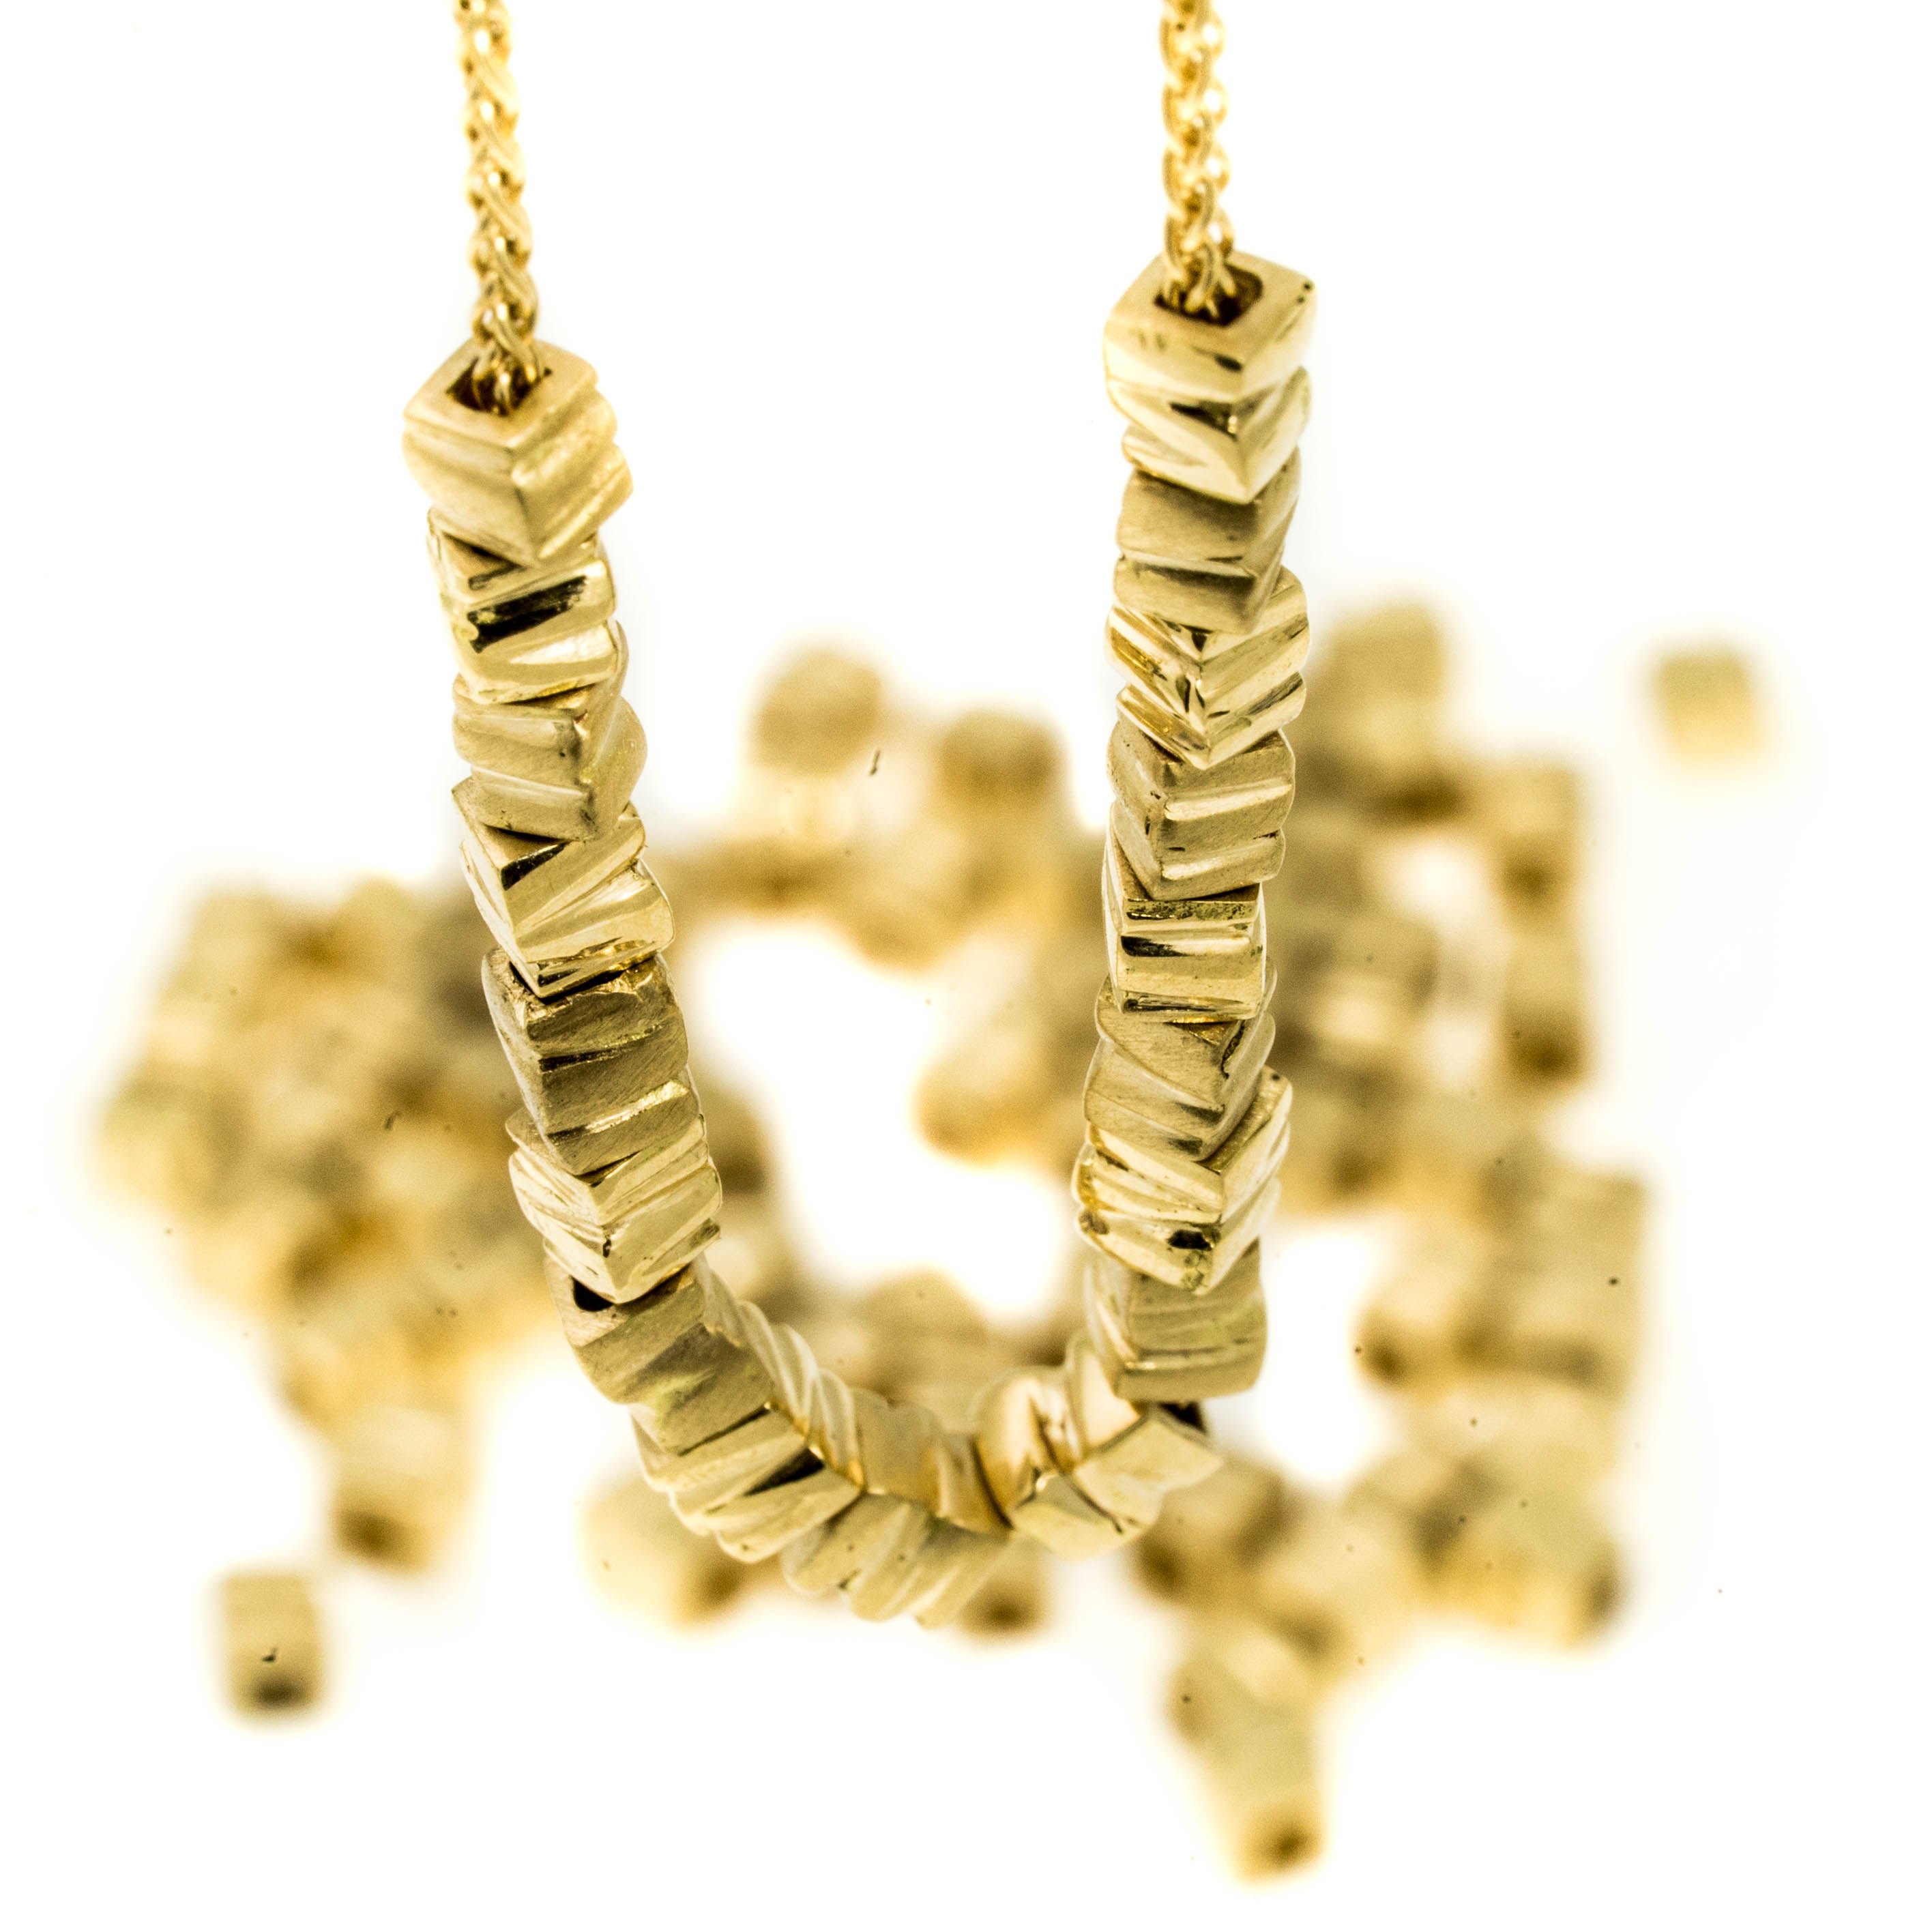 18K yellow gold- Small 34 Smashed Beads Unique Necklace